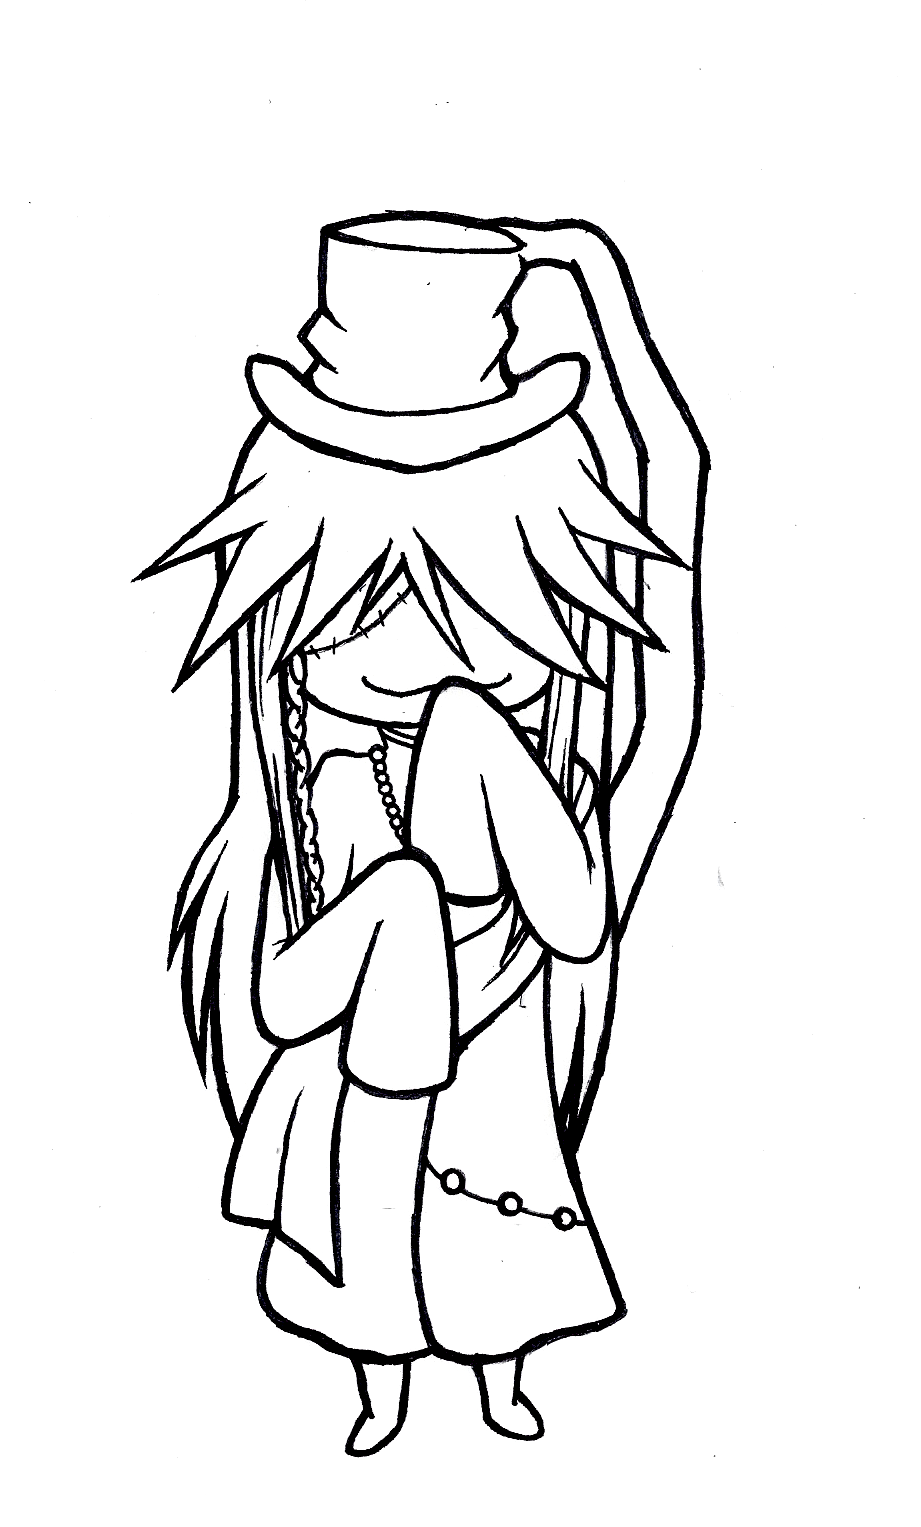 Chibi undertaker lineart by saltyfruitato on deviantart for Undertaker coloring pages